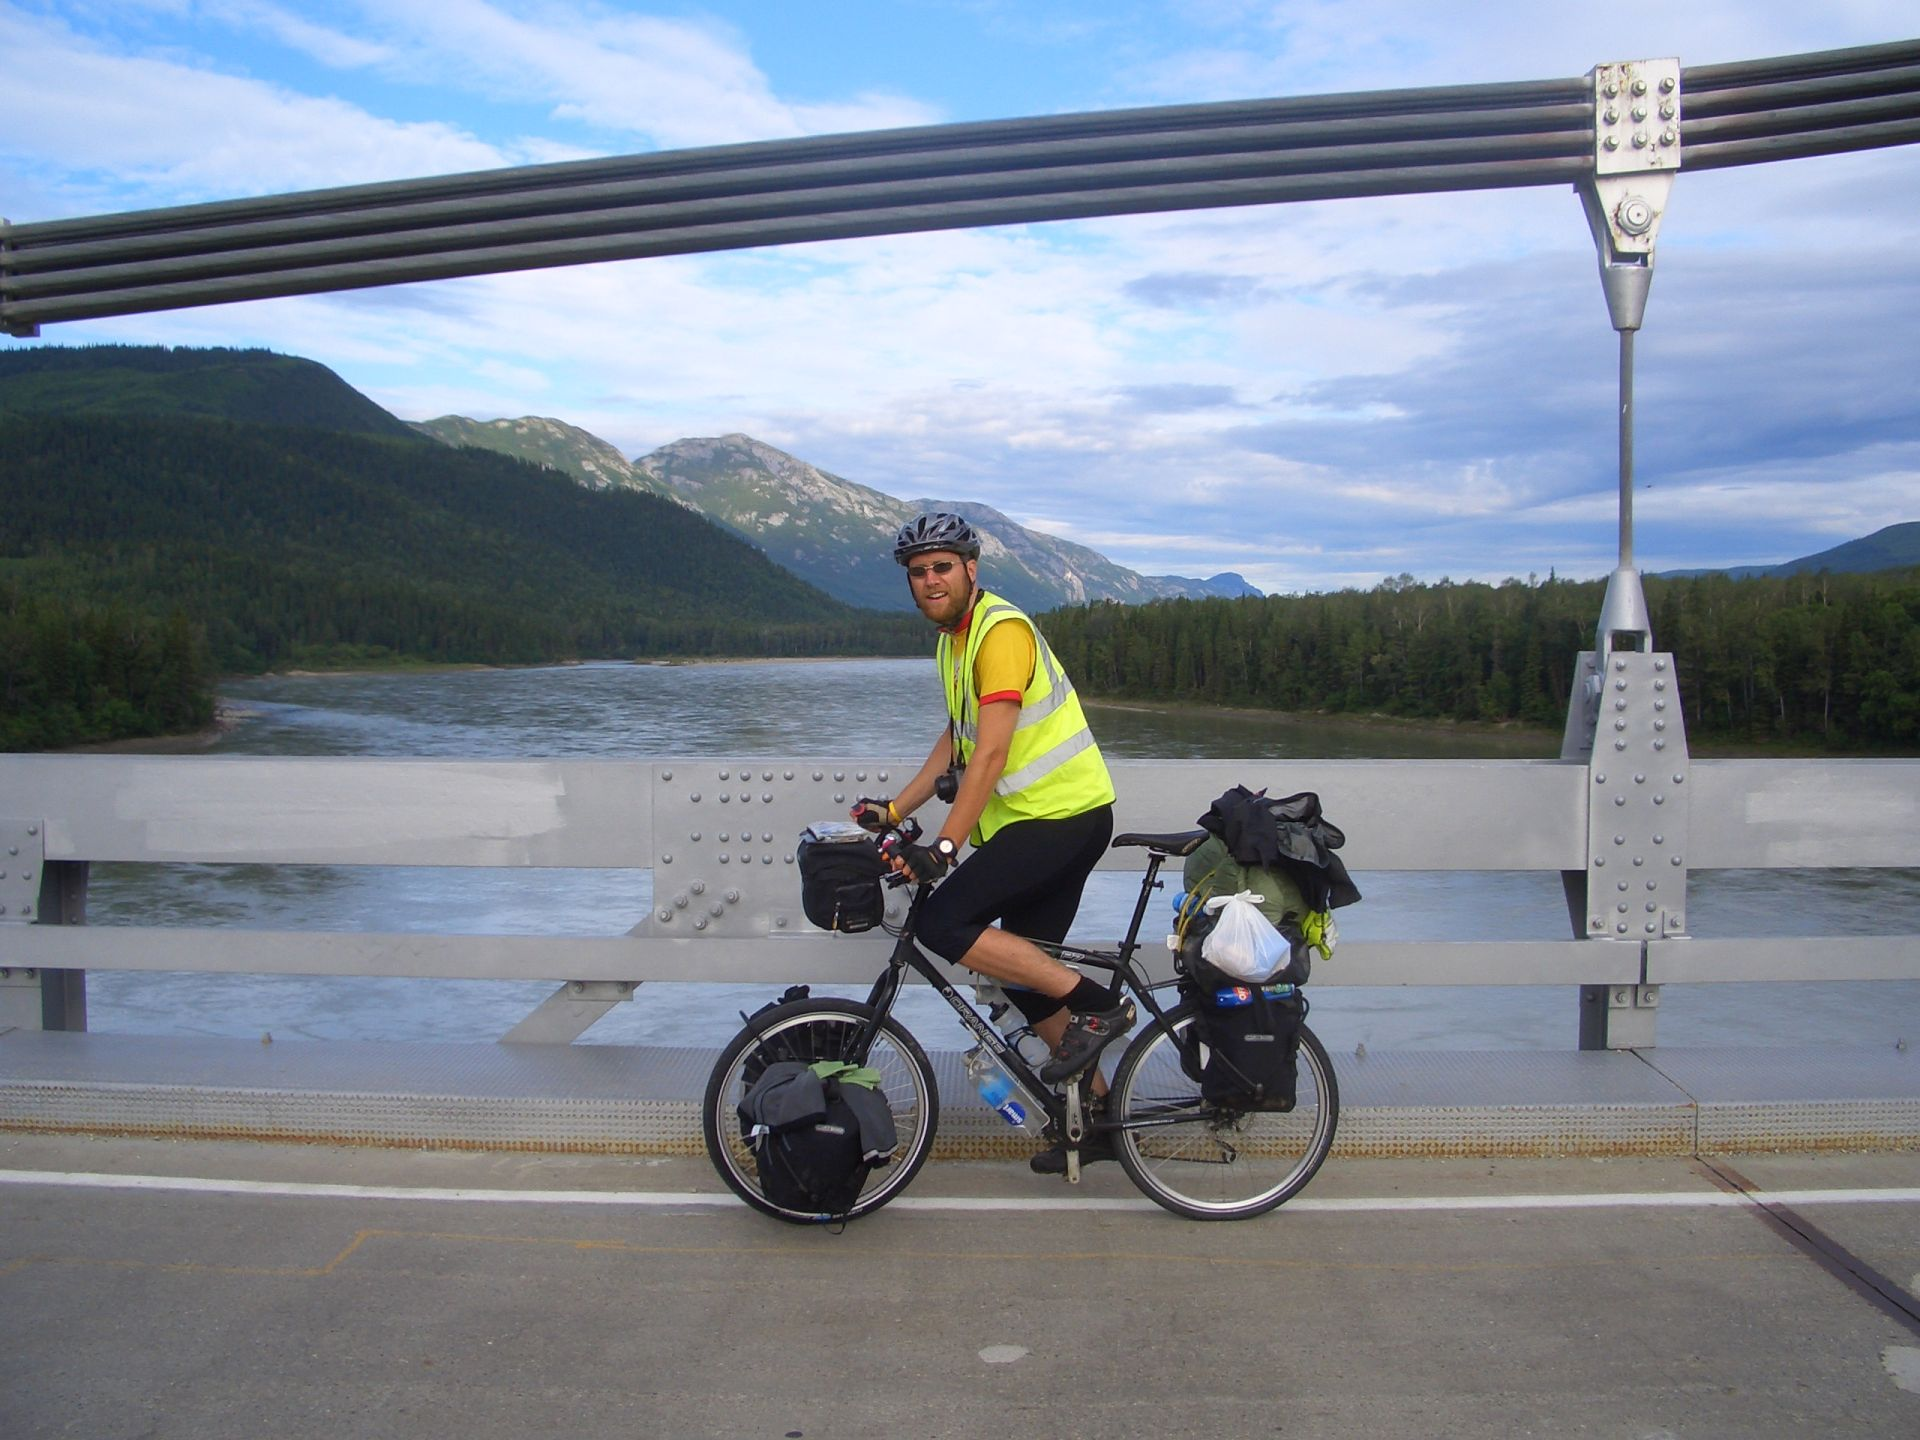 Nr Liard Hot Springs, YT, Canada - lining up for attemped \'trackstand\' with panniers...eek! ;)